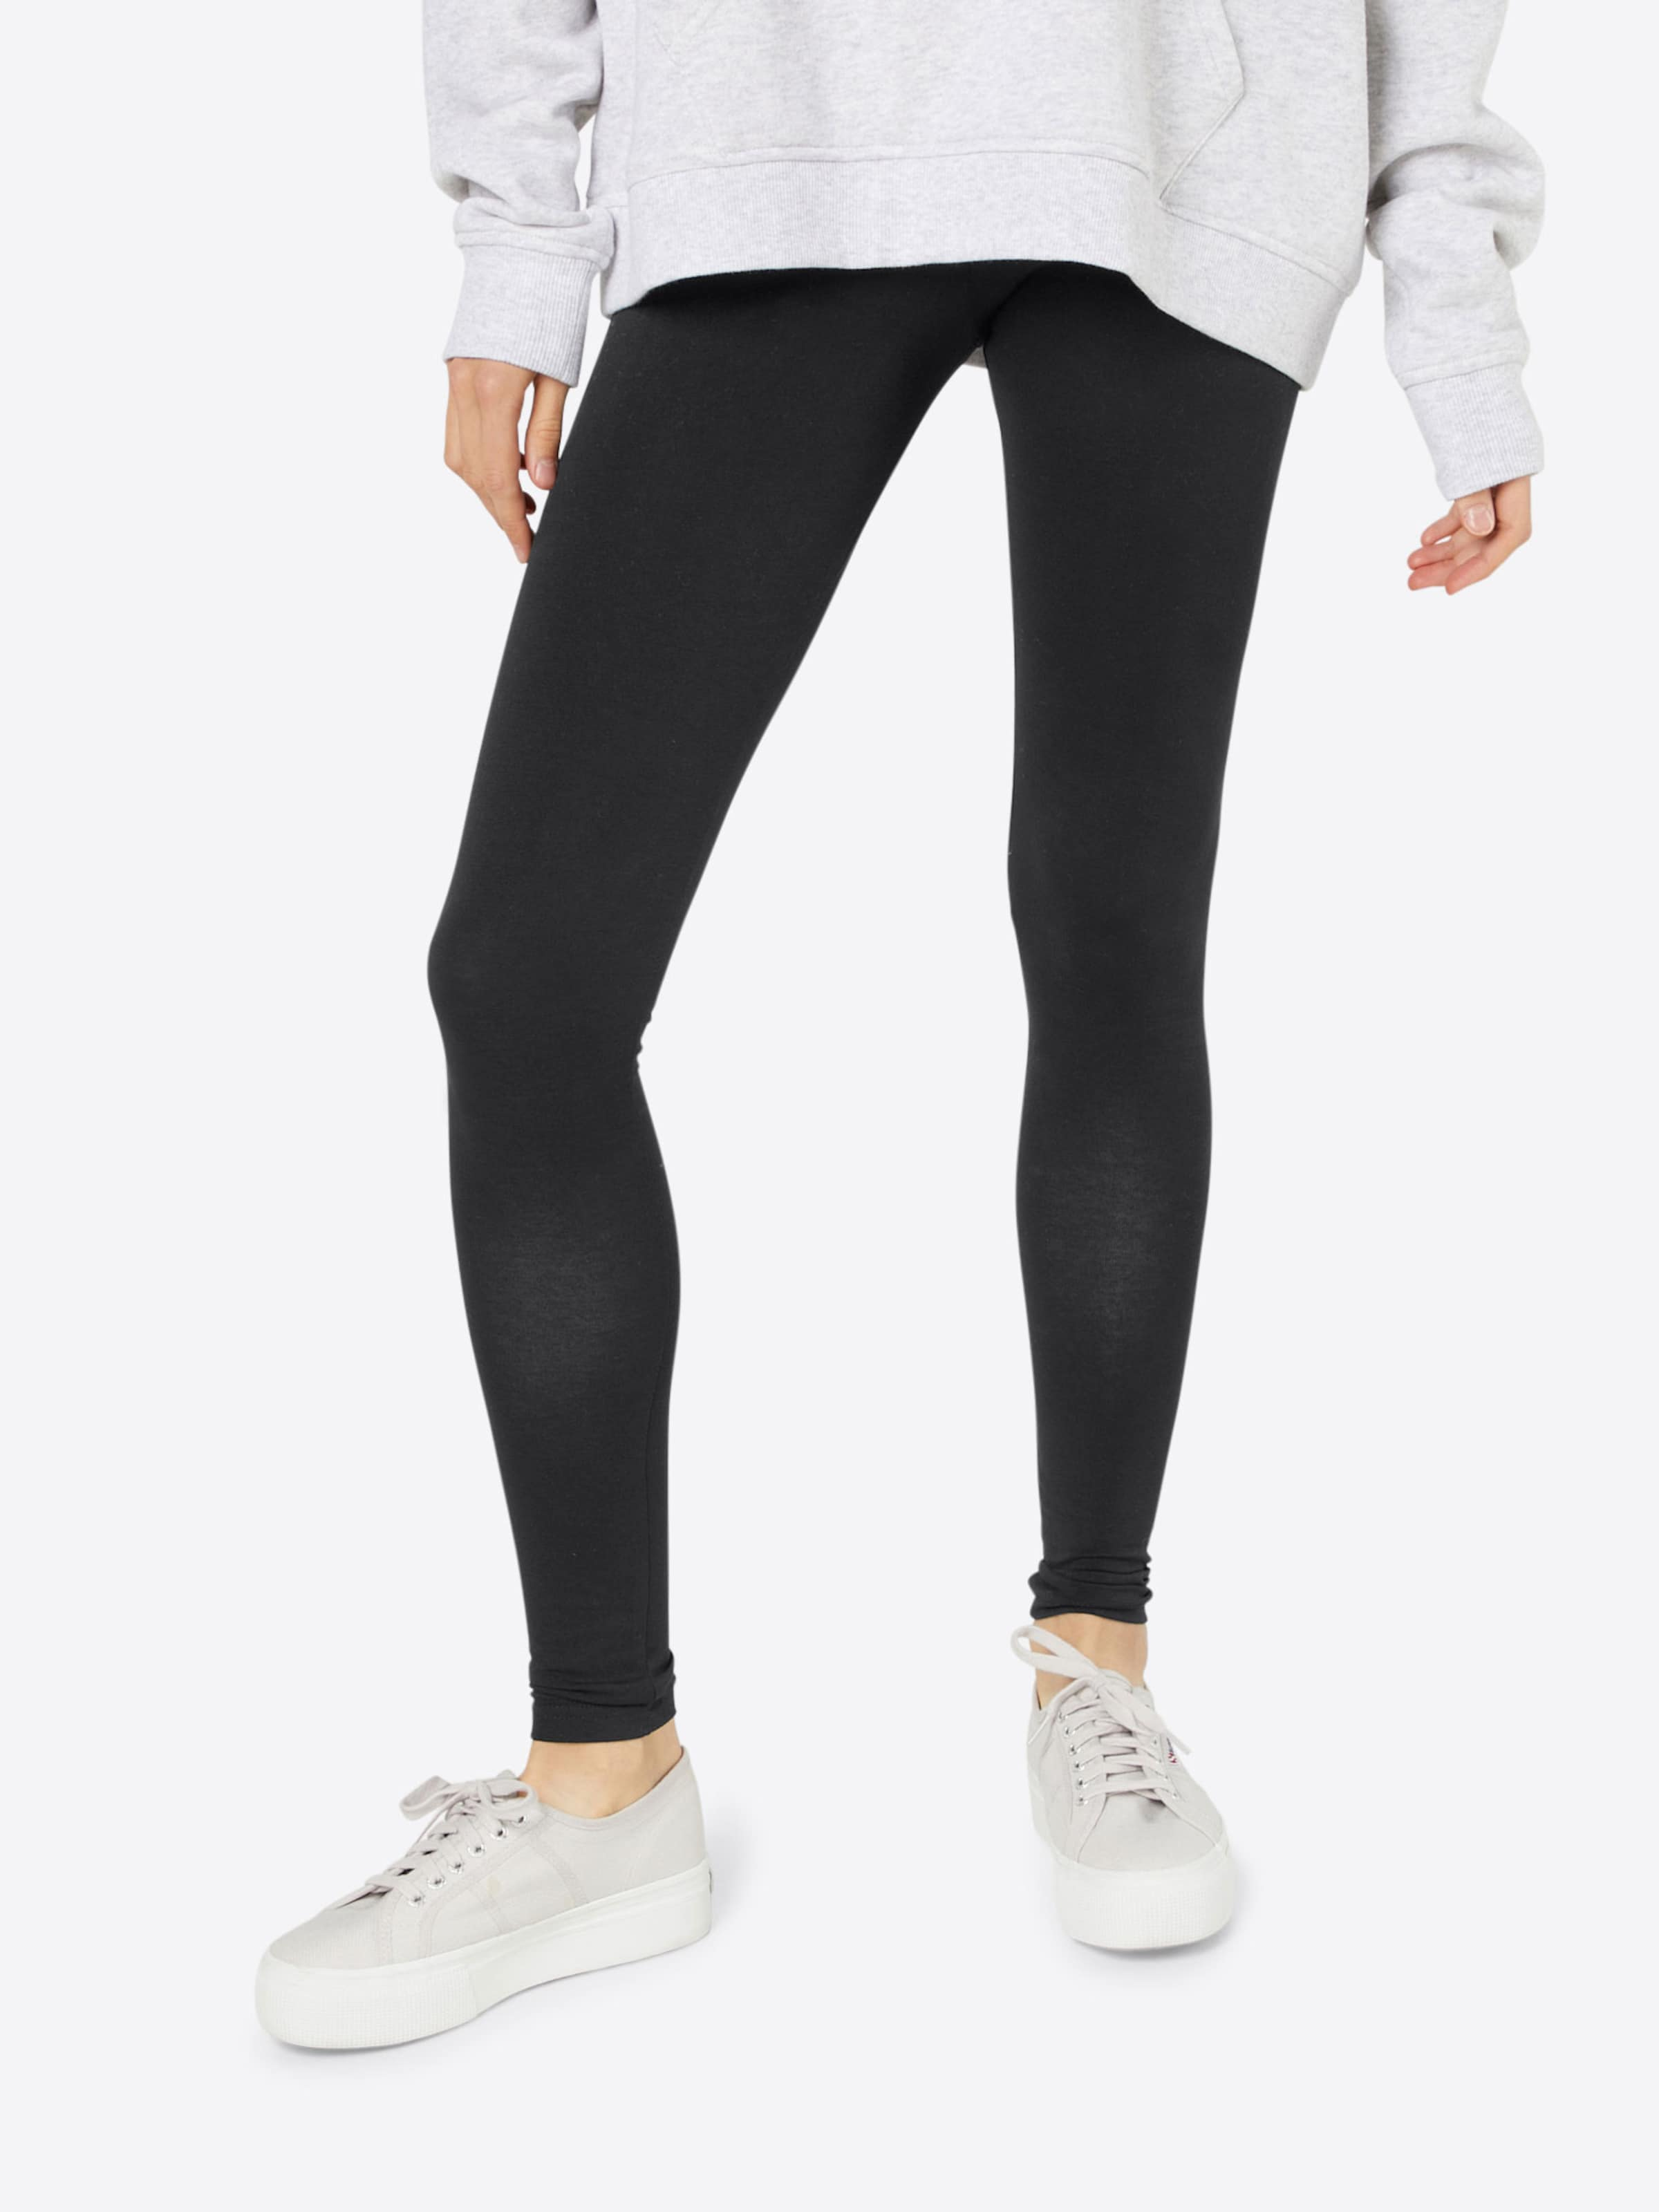 Jersey Pieces Leggings In Schwarz Aus 'edita' hxQBrtsdC